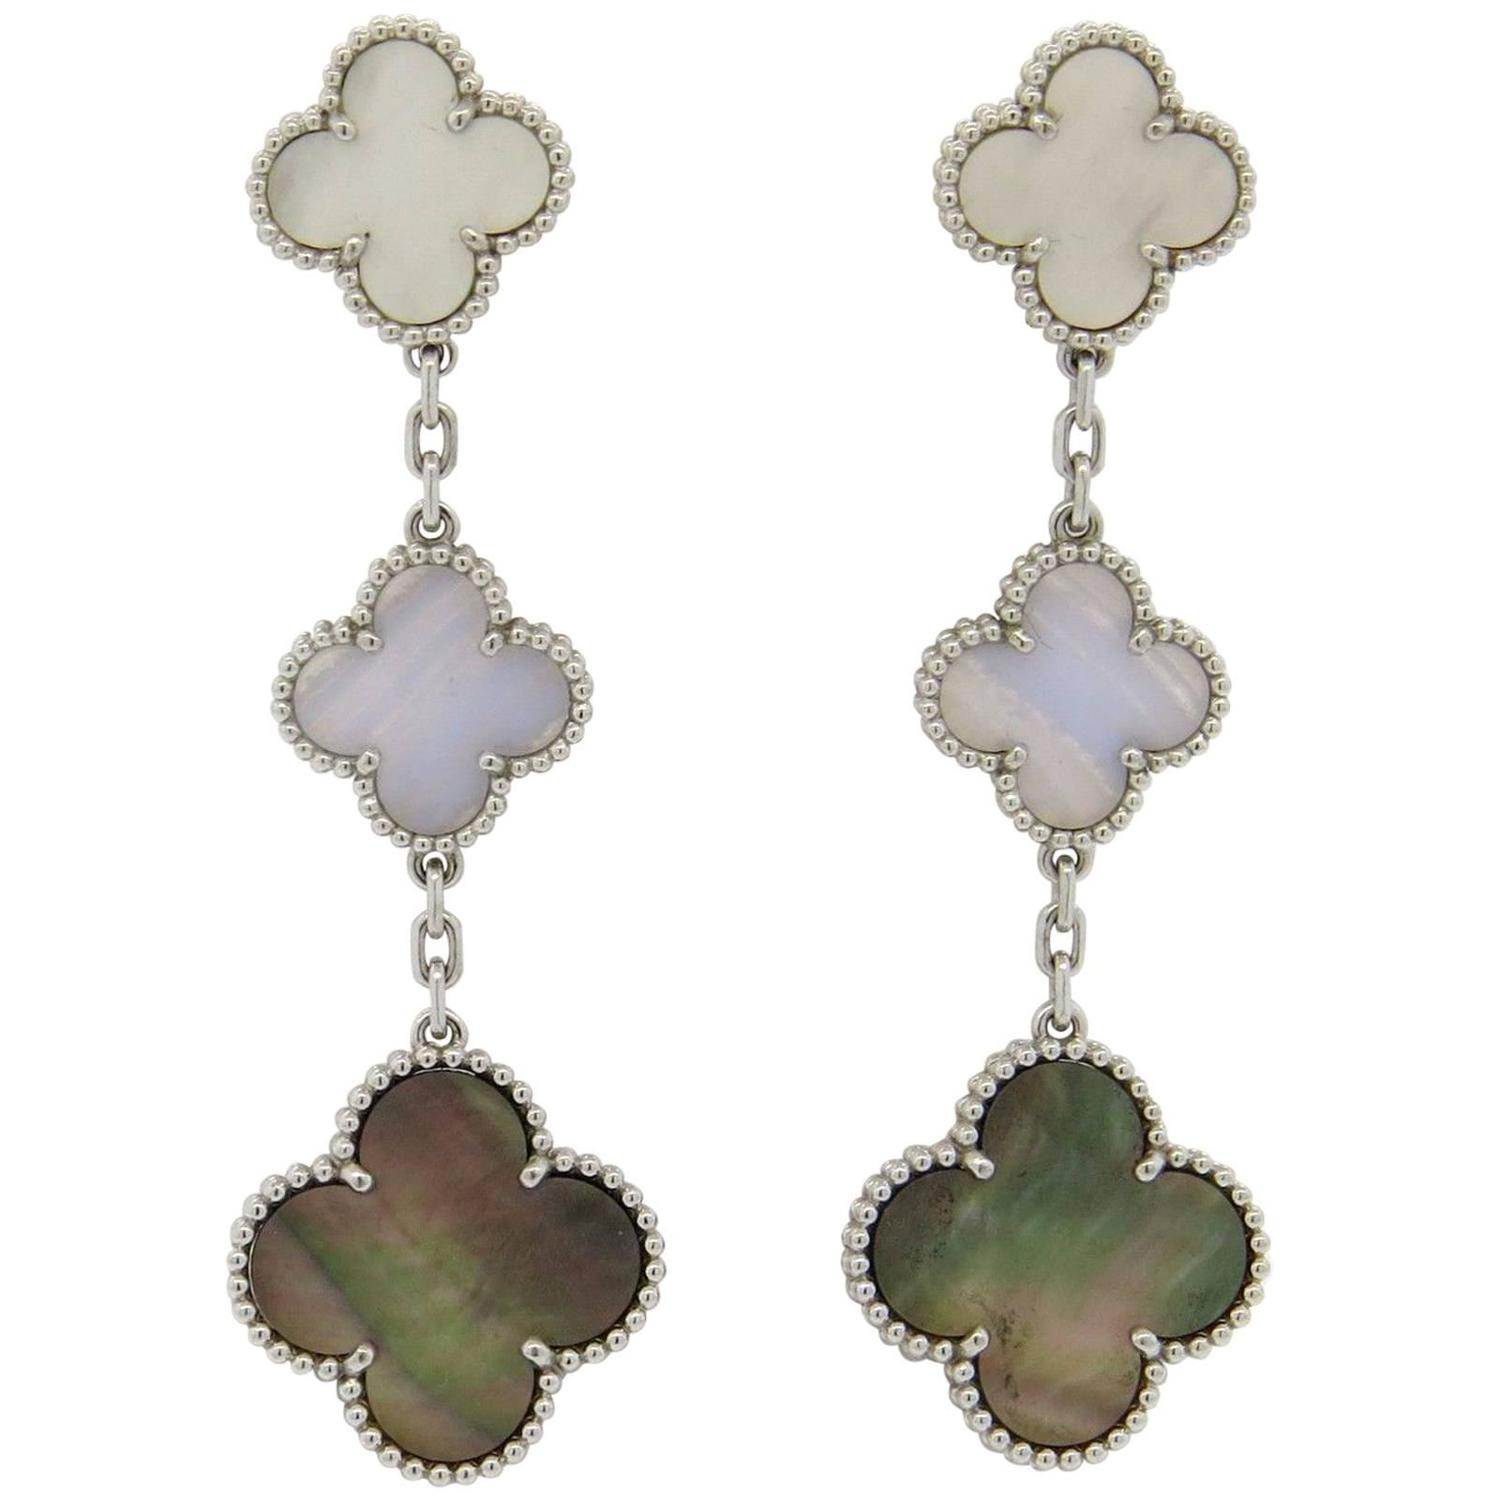 Van cleef alhambra earrings price